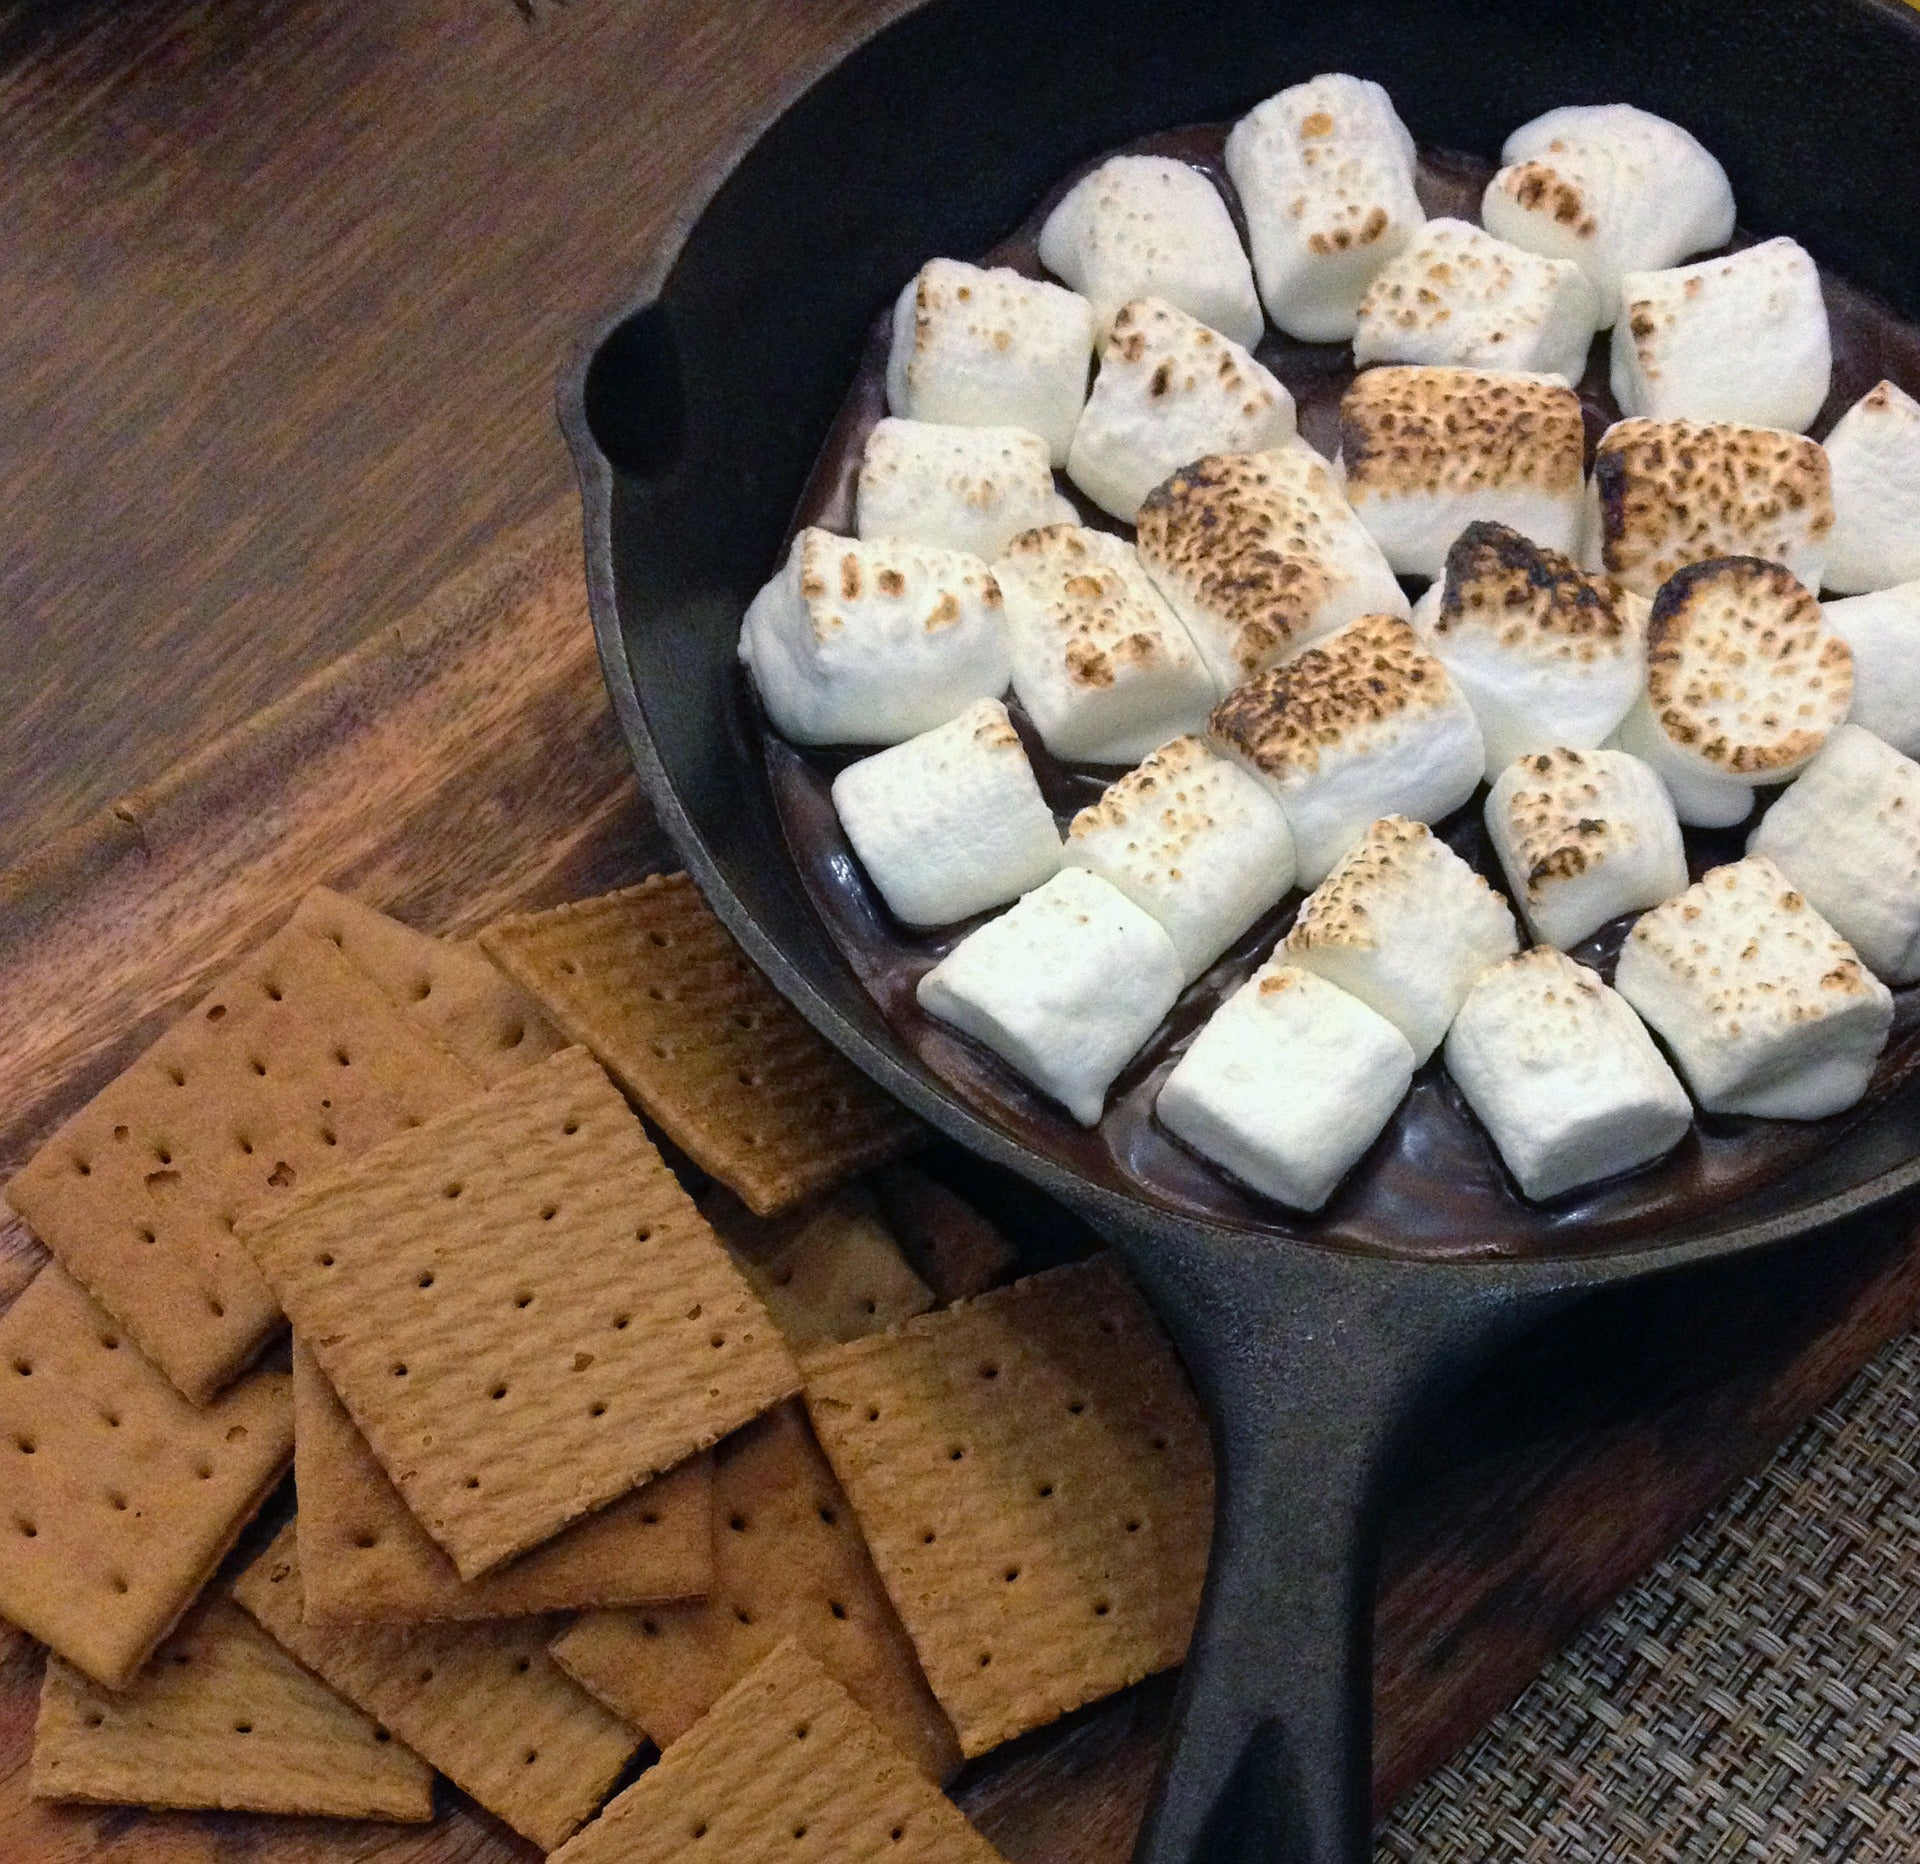 Make S'mores like a Boss